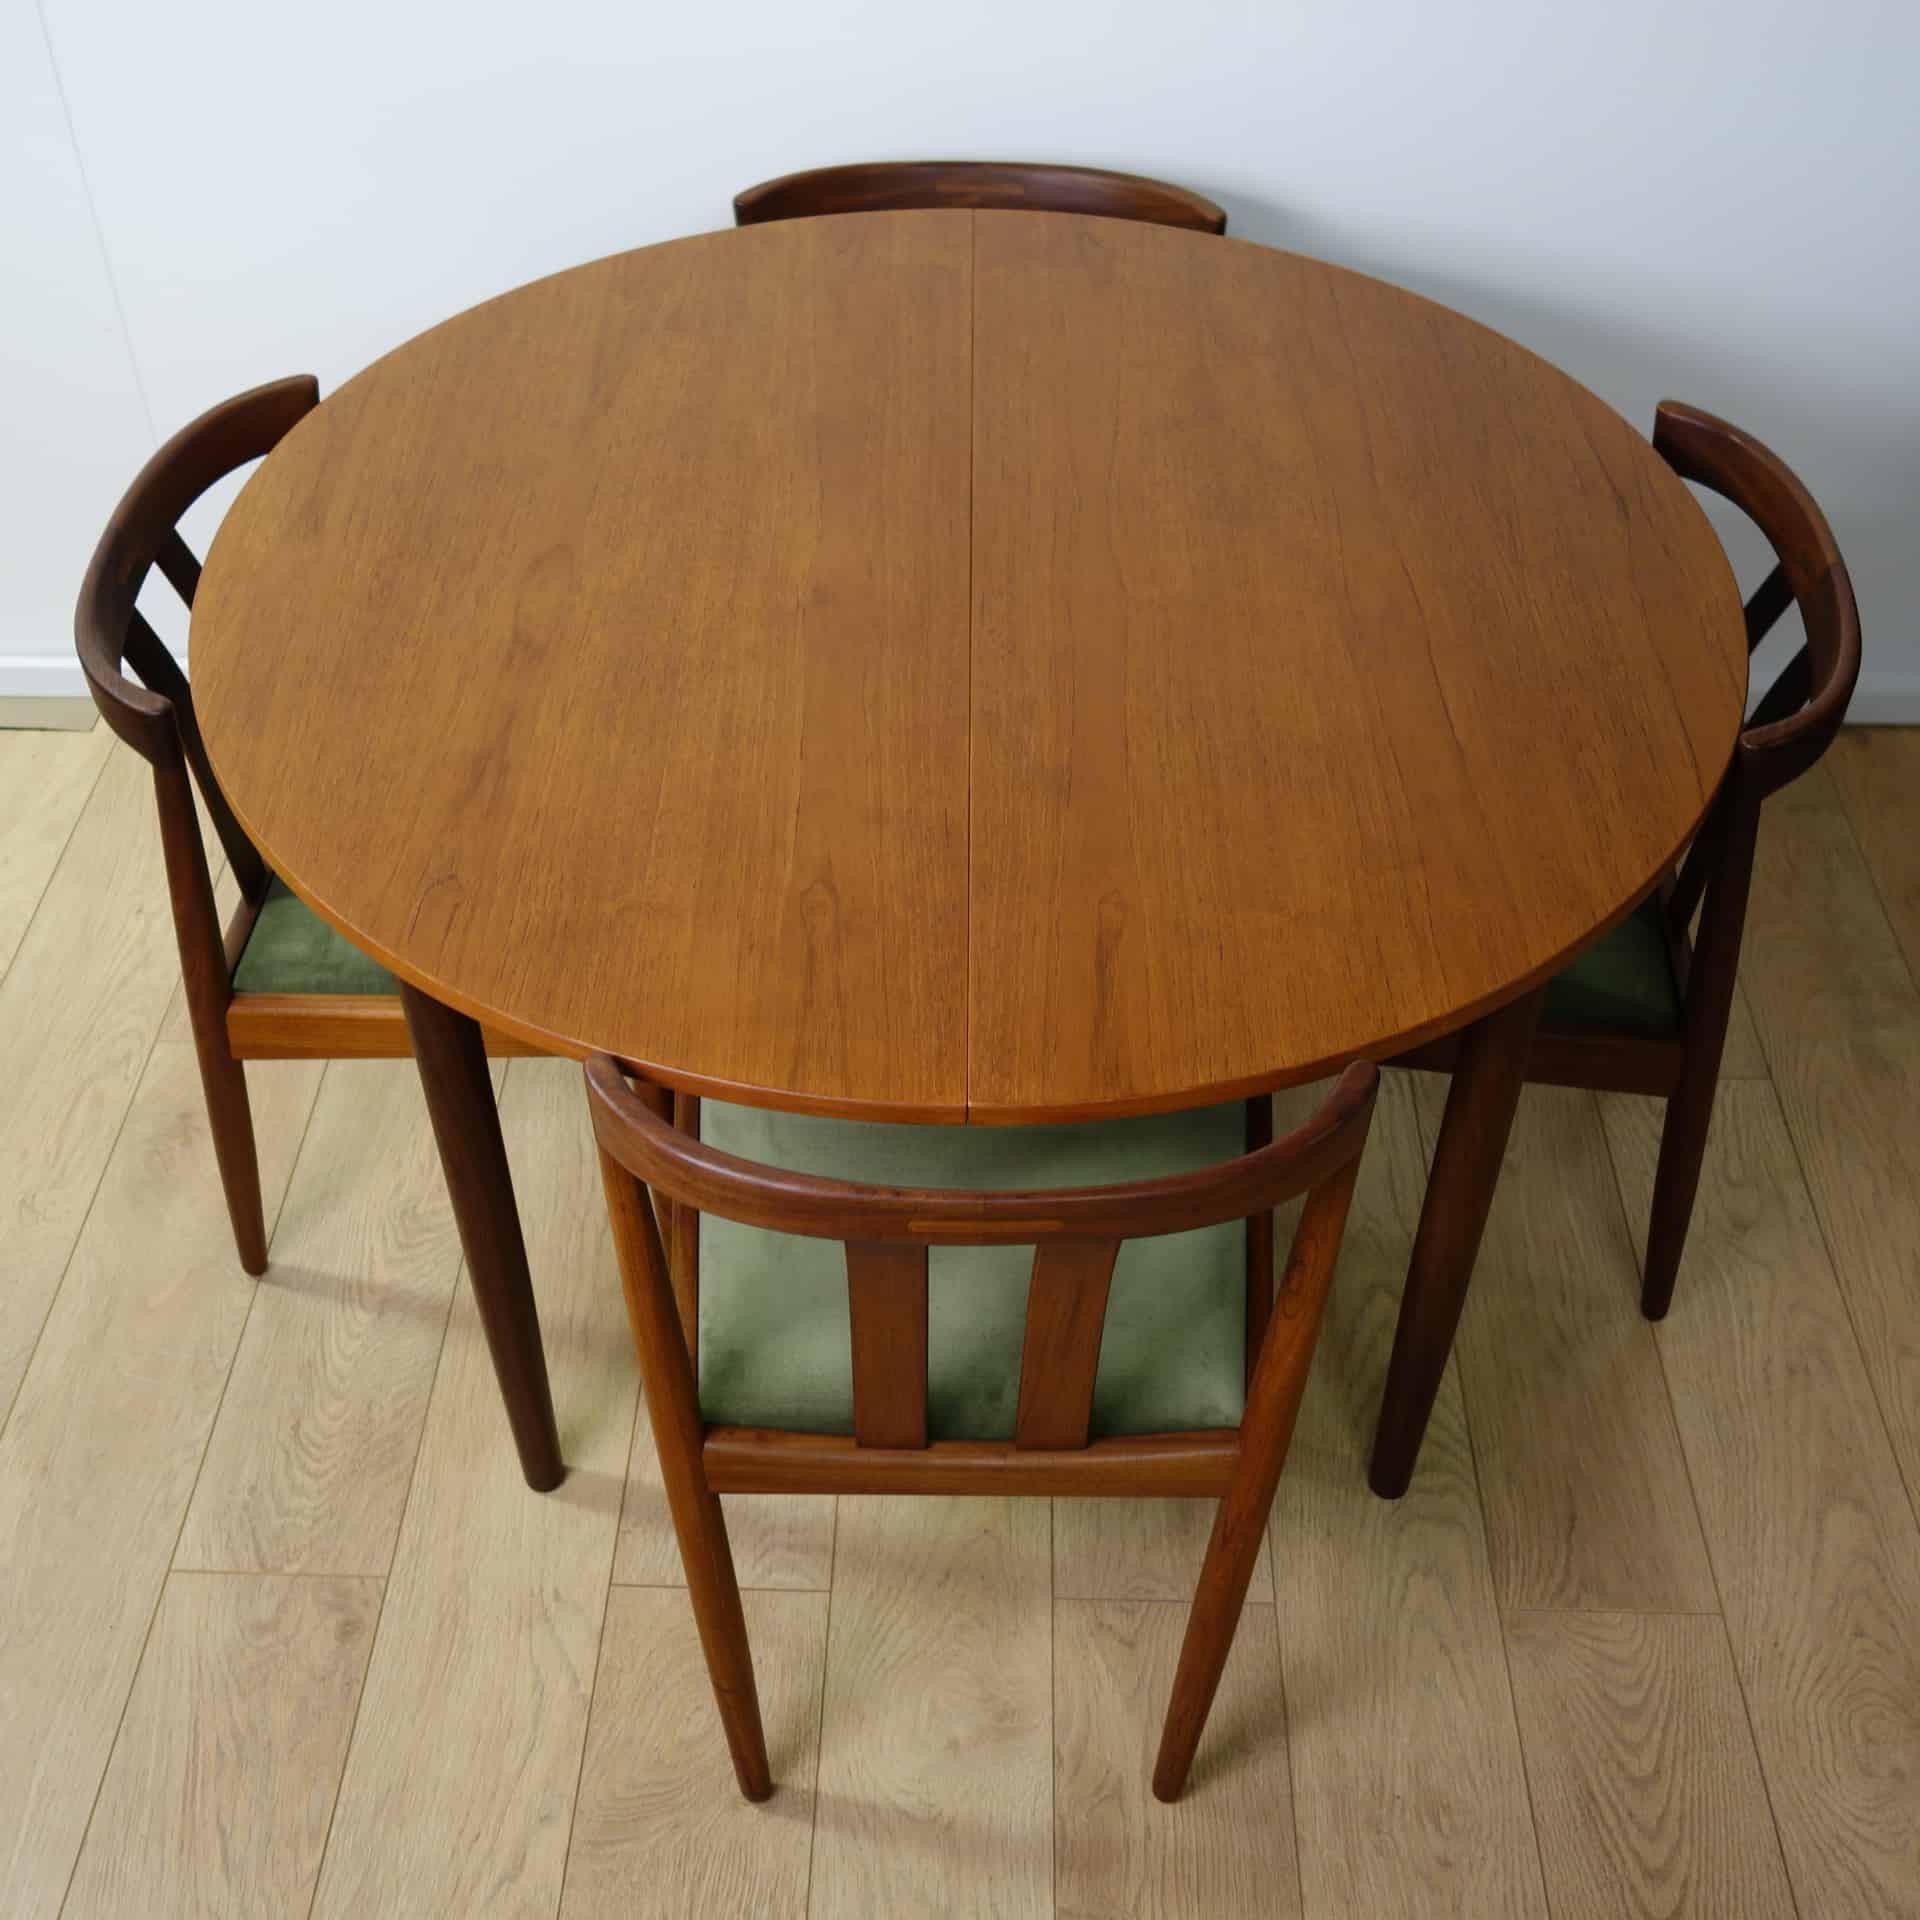 Teak Dining Table And Chairs: Danish Teak Extending Dining Table And 8 Chairs